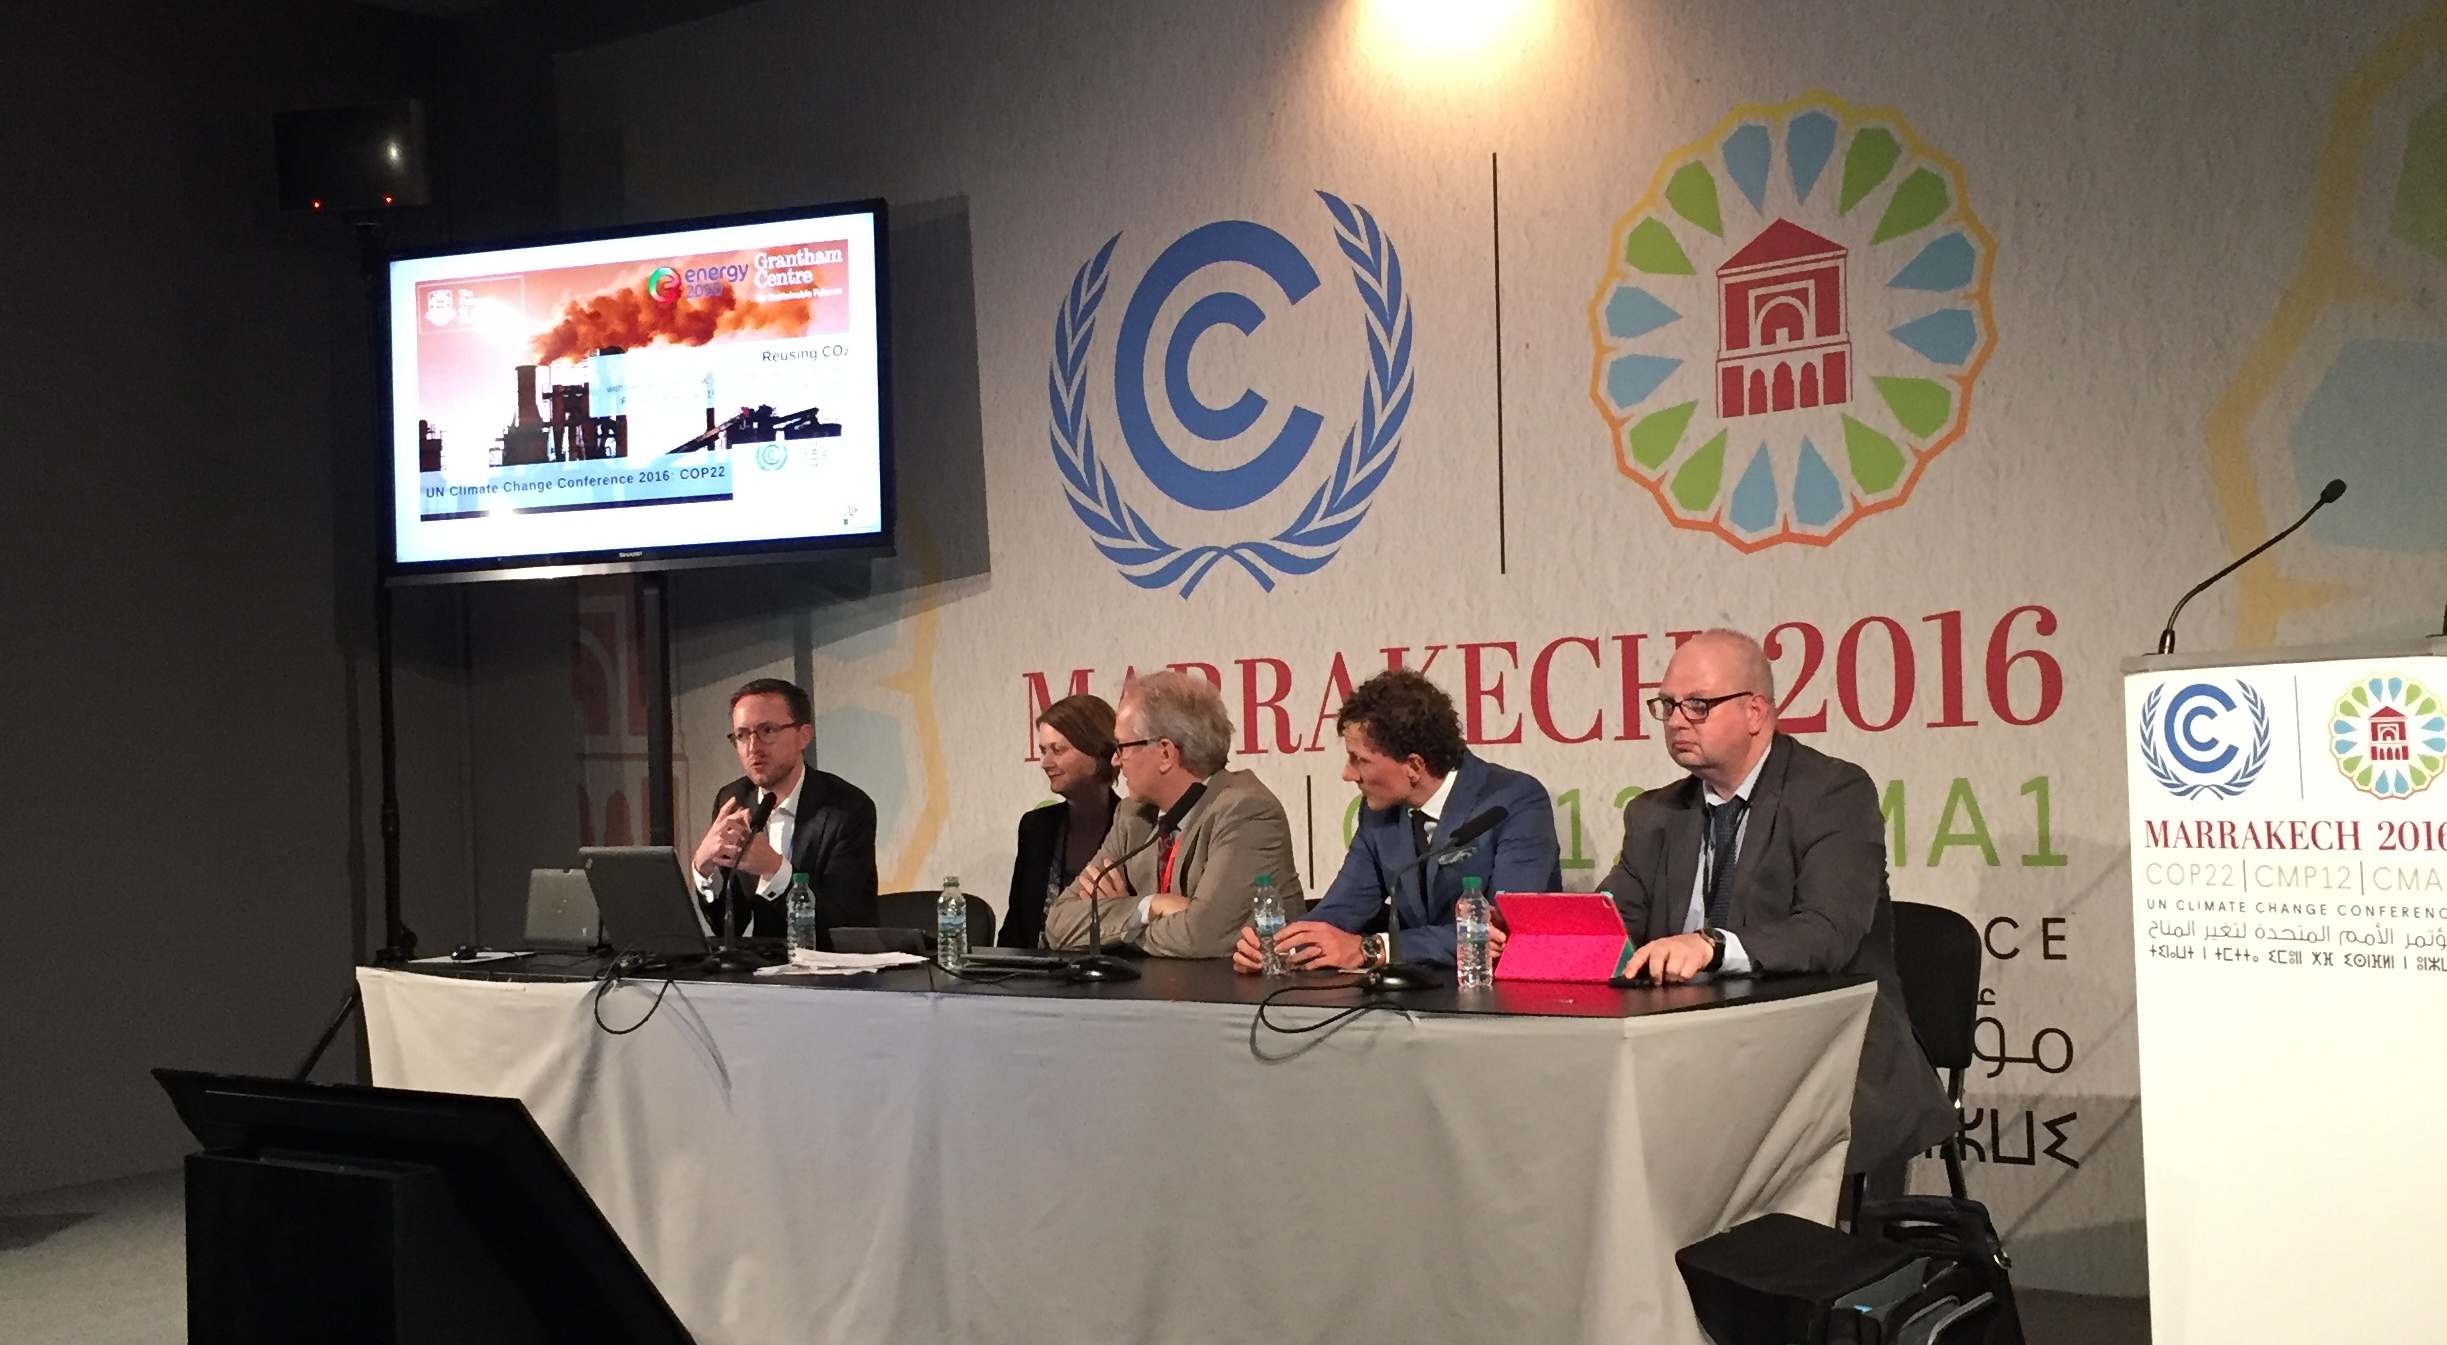 Panel on reusing co2